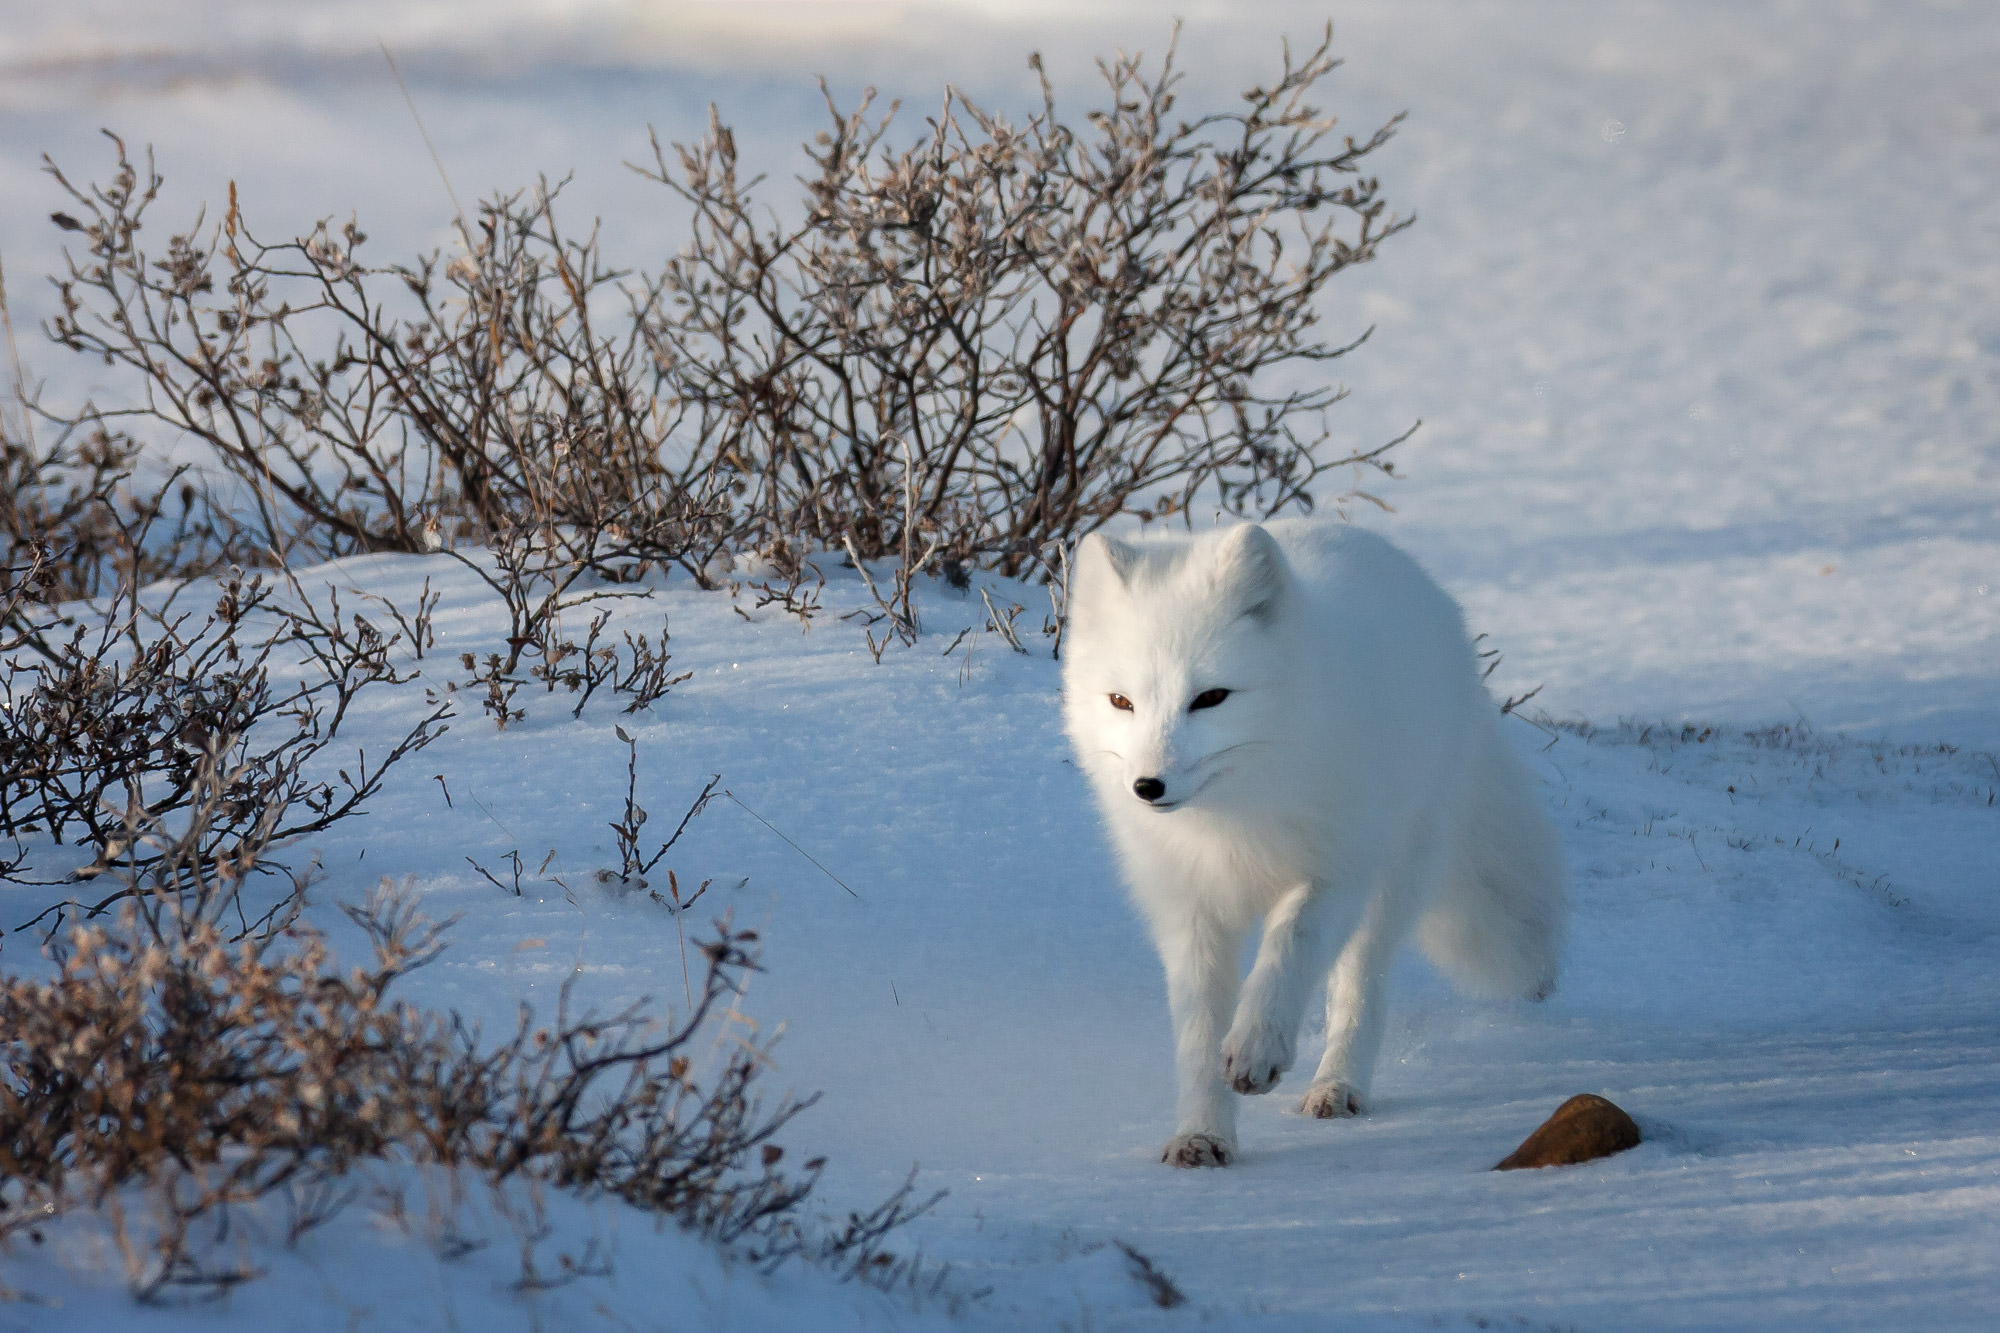 Arctic Fox Fine Art Photography A Limited Edition photograph of a white Arctic Fox hot on the trail of finding lunch in the snow...